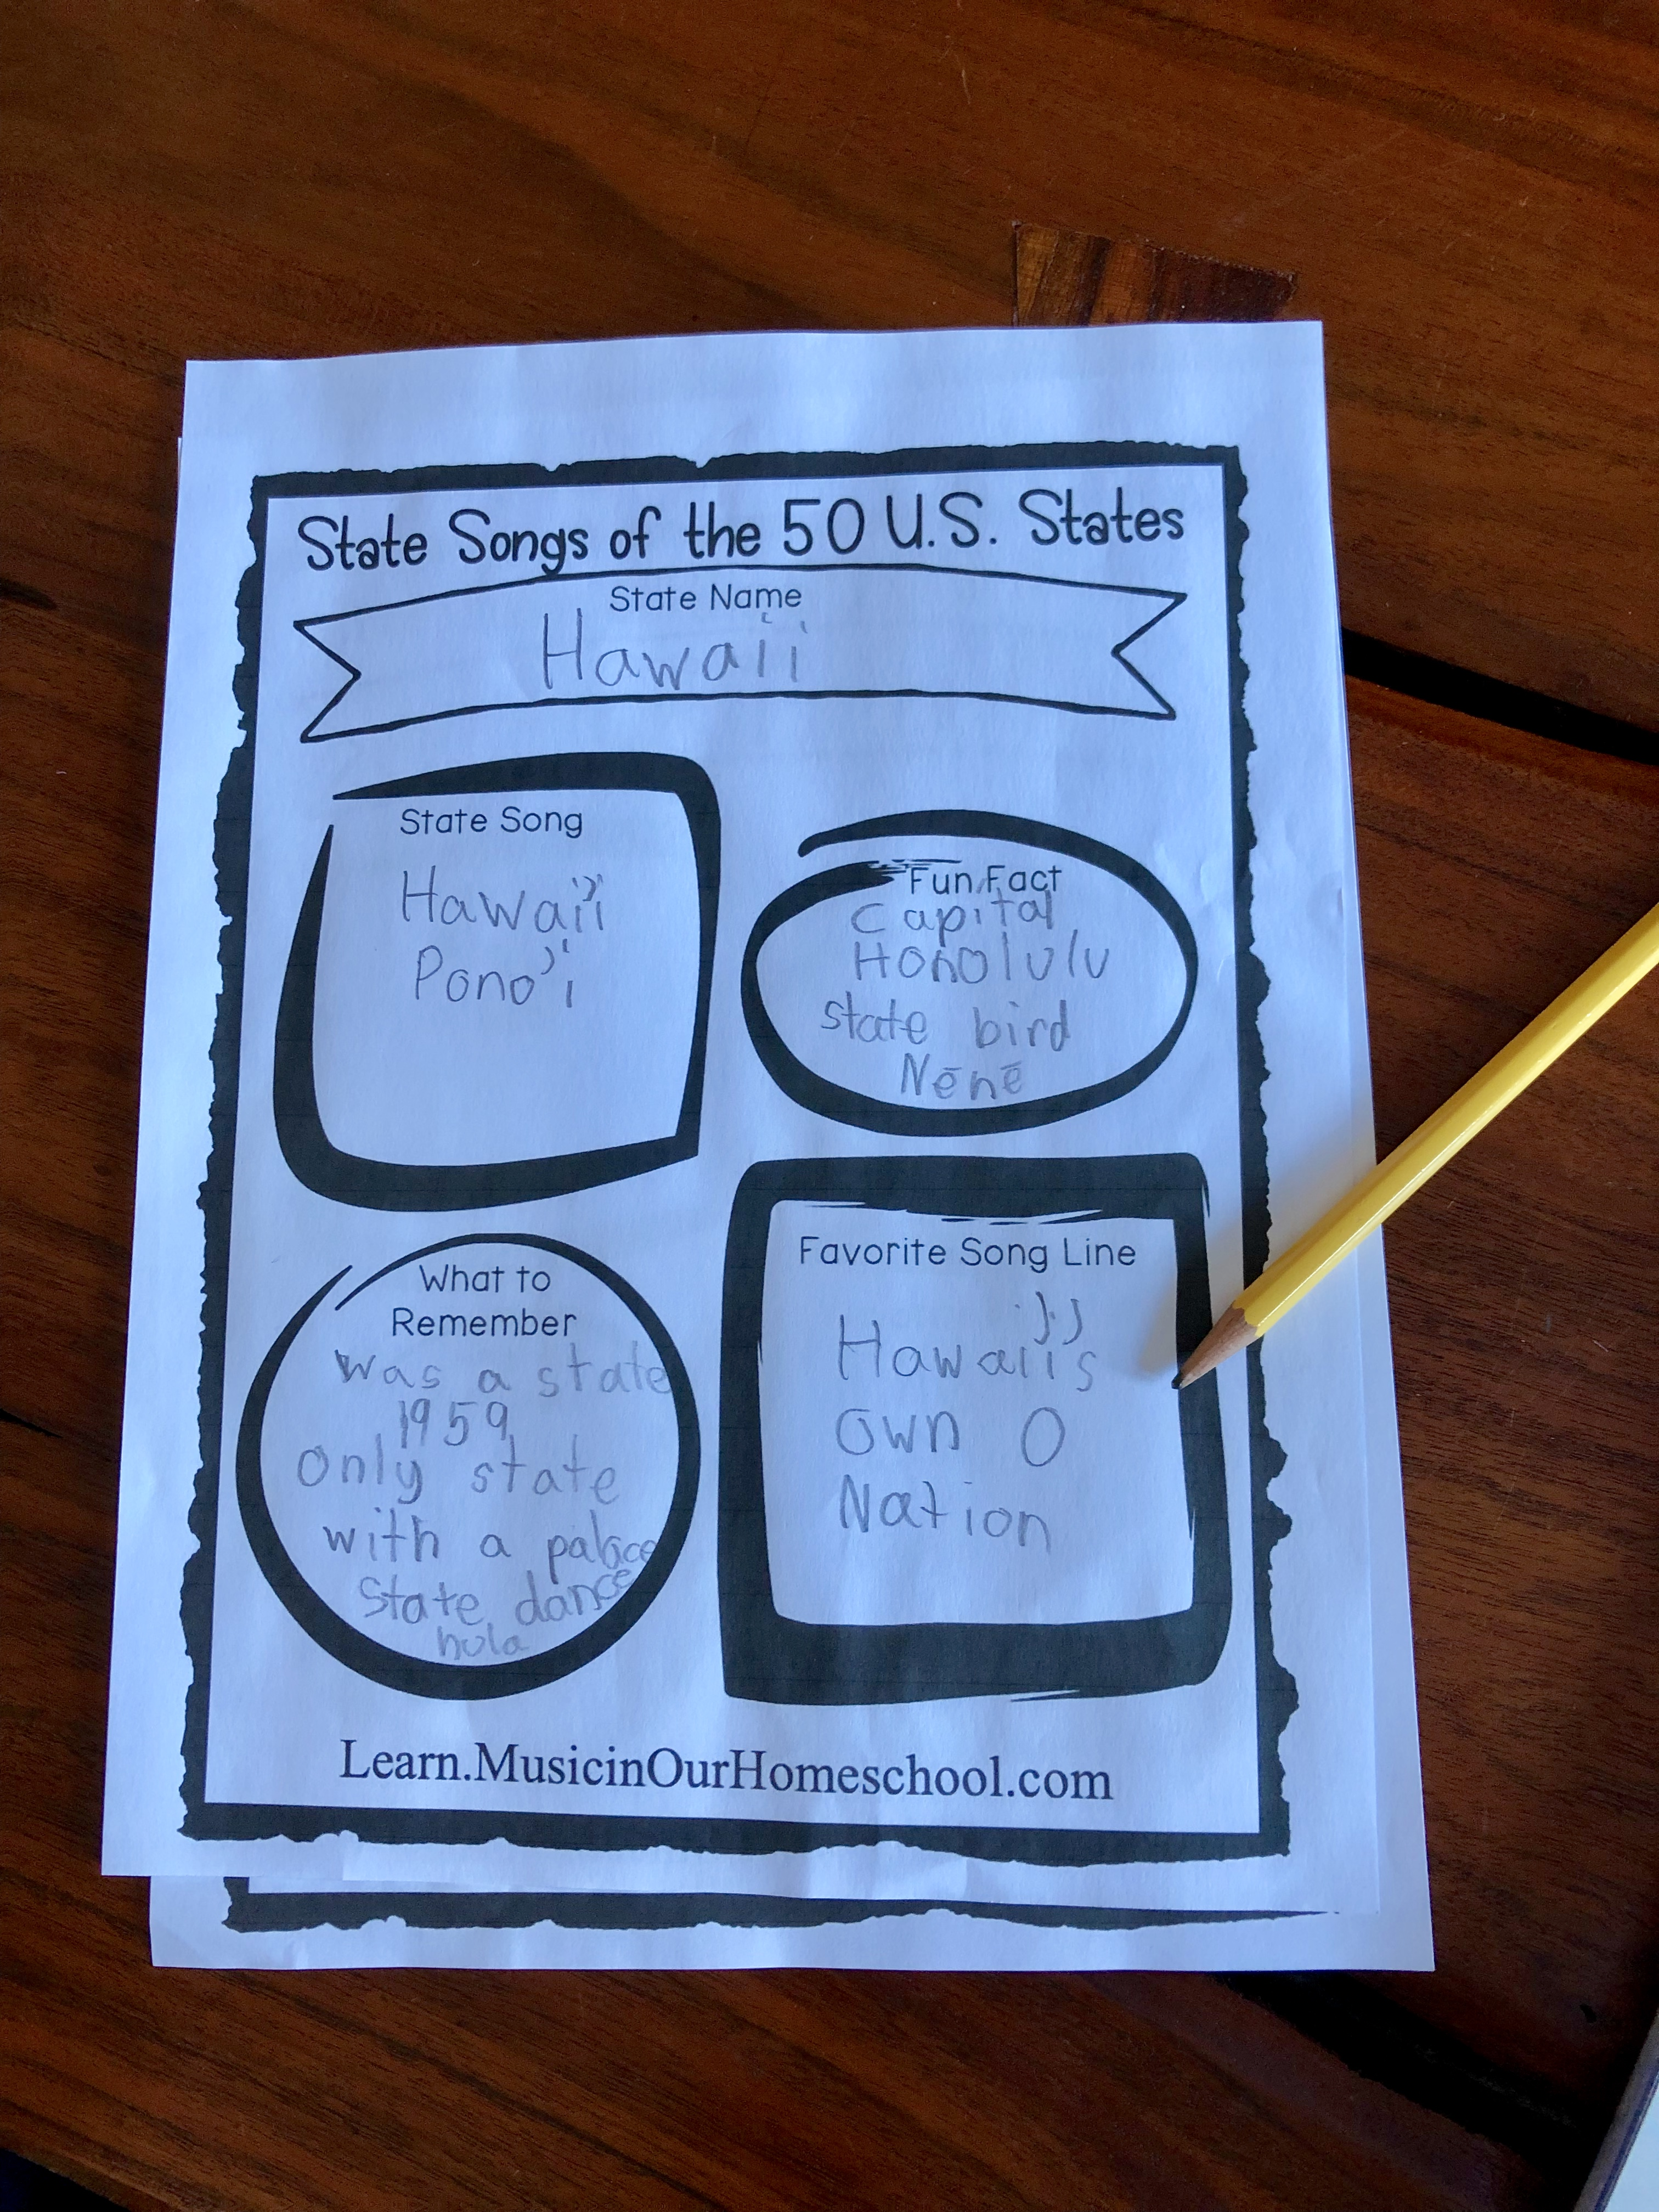 Here is a notebooking page from State Songs of the 50 U.S. States online course, the perfect way to learn all about the U.S. States and do some music along the way! #musiceducation #elementarymusic #musiclessonsforkids #musicinourhomeschool #statesongscourse